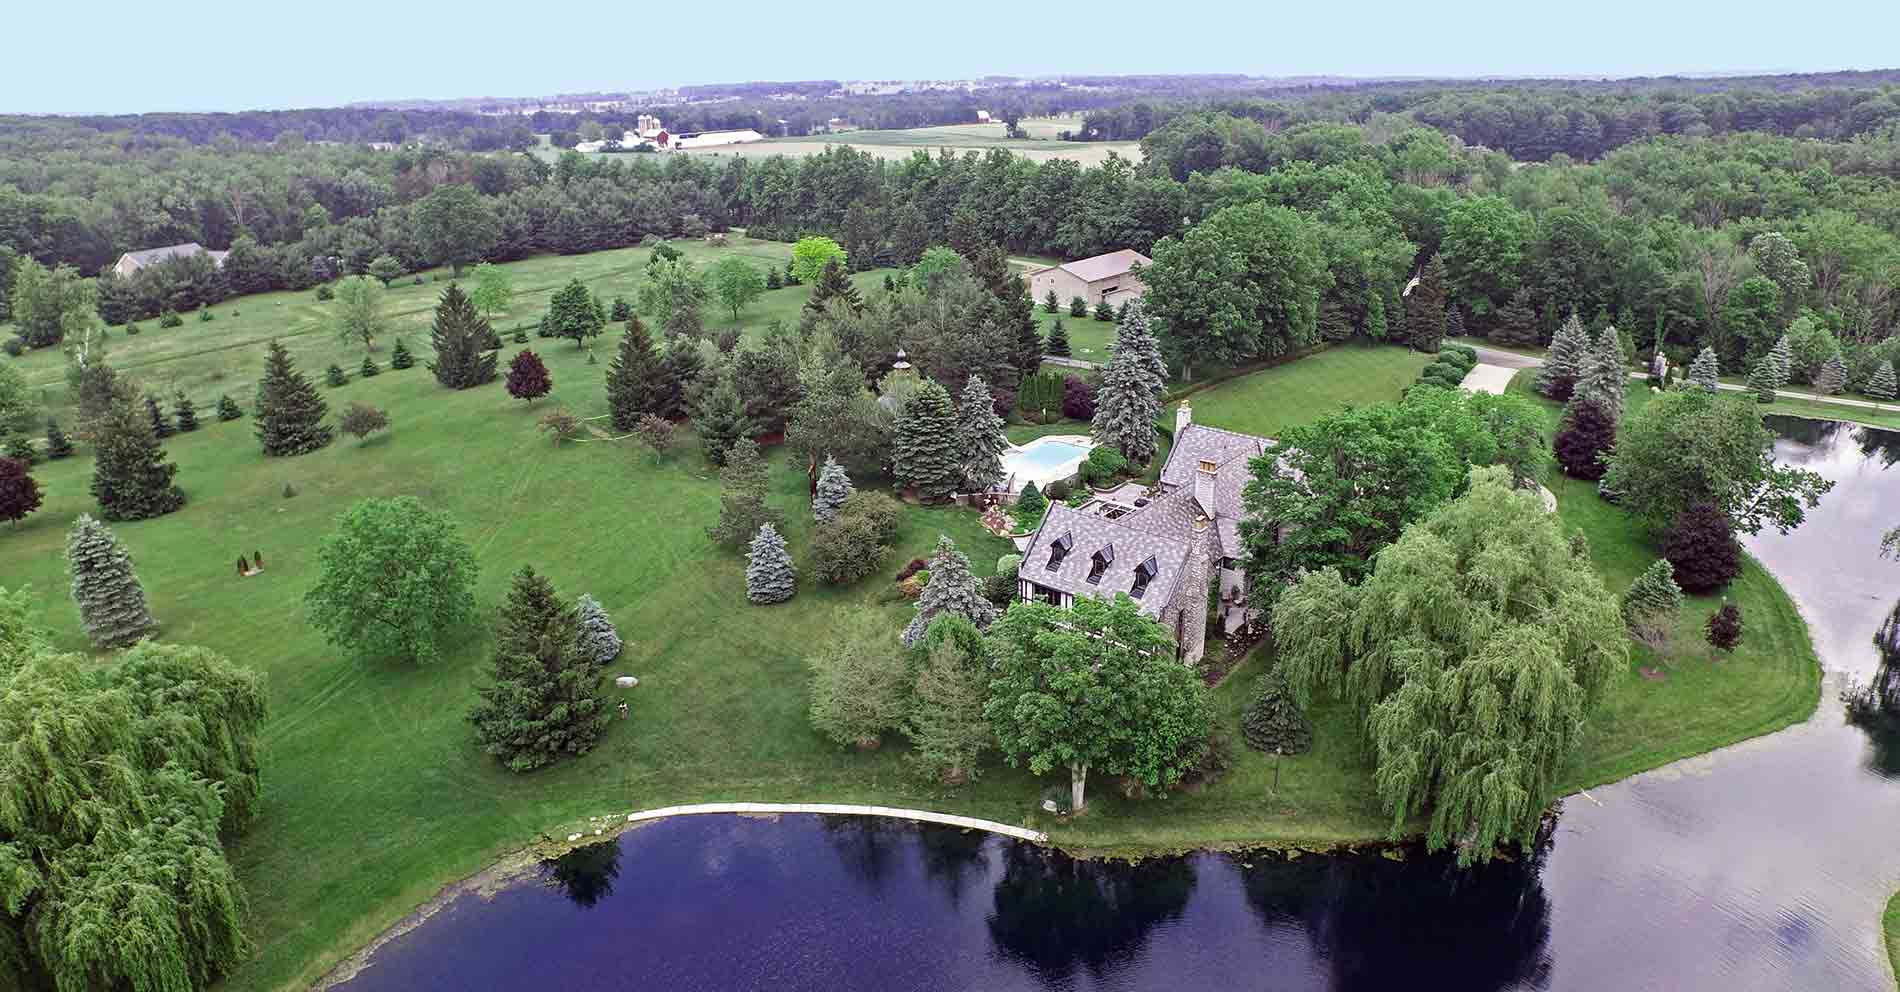 4721 Hasslick - North Branch Township, Michigan - $1,899,900 USD